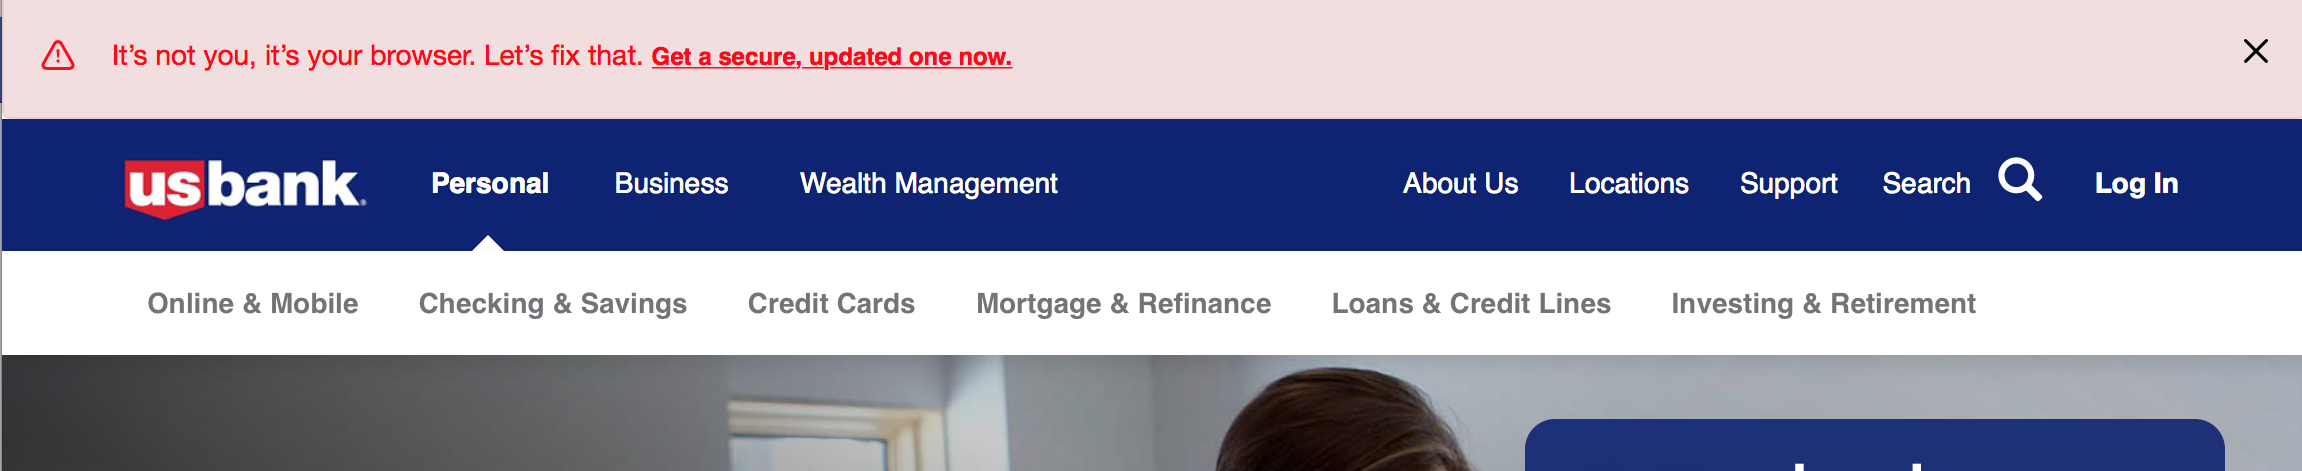 US Bank shows a well-written error message